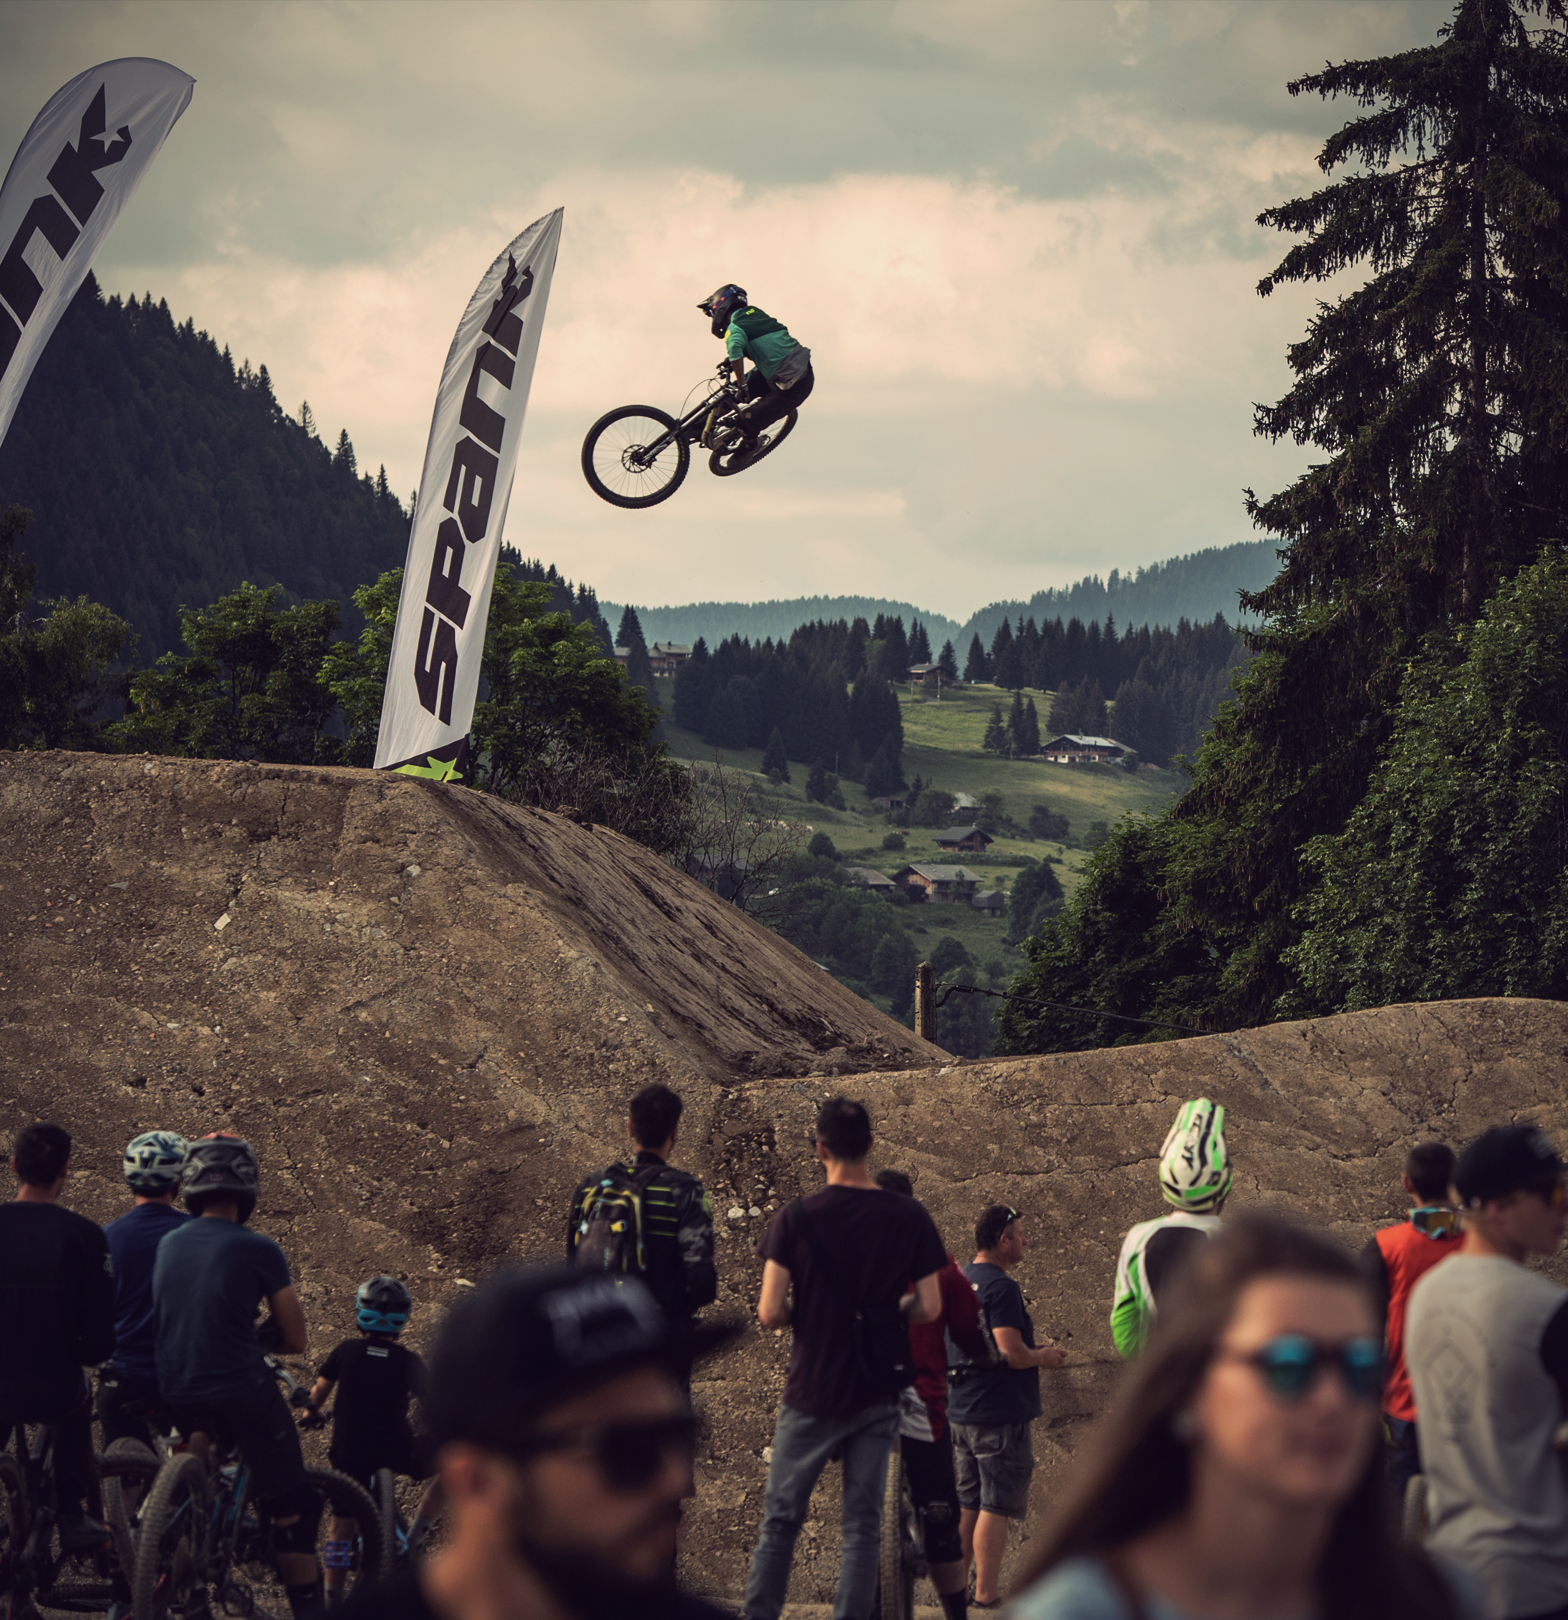 Amir Kabbani at the Crankworx Les Gets Whip-Off Session.